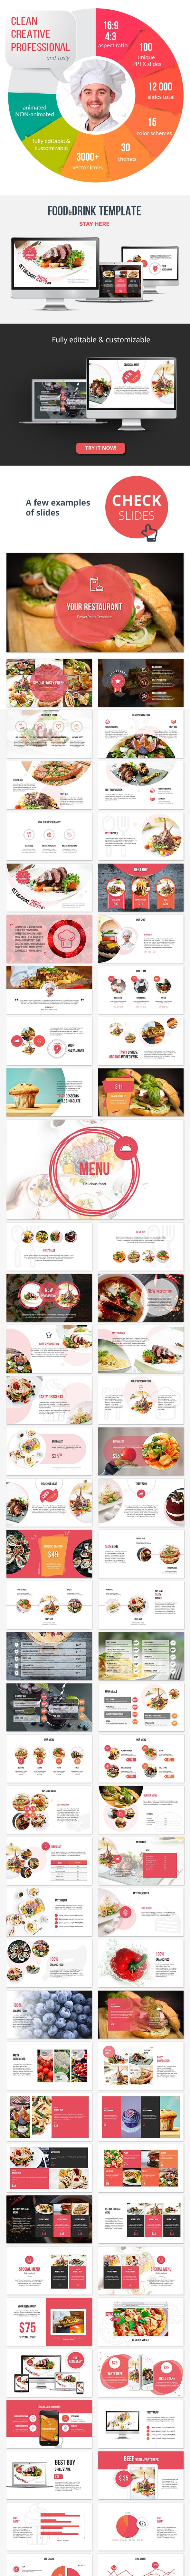 Food & Drinks PowerPoint Presentation Template - PowerPoint Templates Presentation Templates